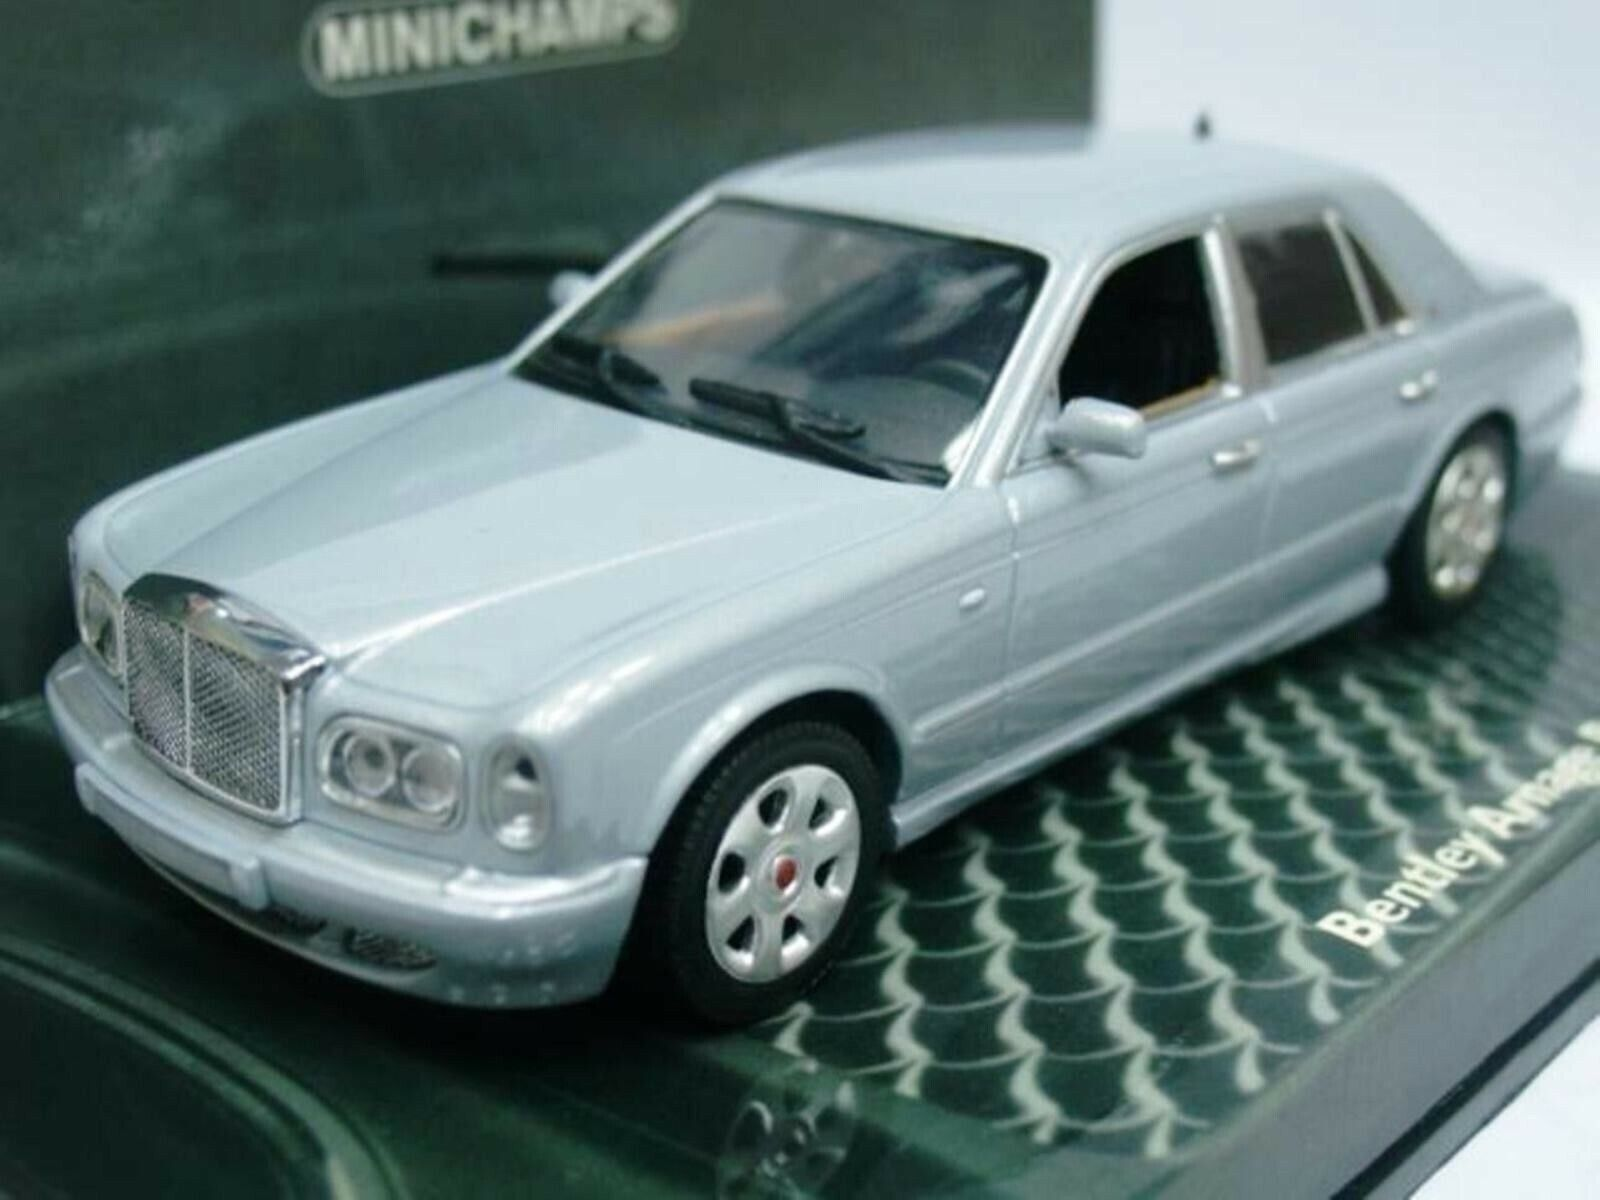 Un raro Bentley arnage R S2 RL 6,75 16 V 2001 iceberg 1  43, mini campeón.